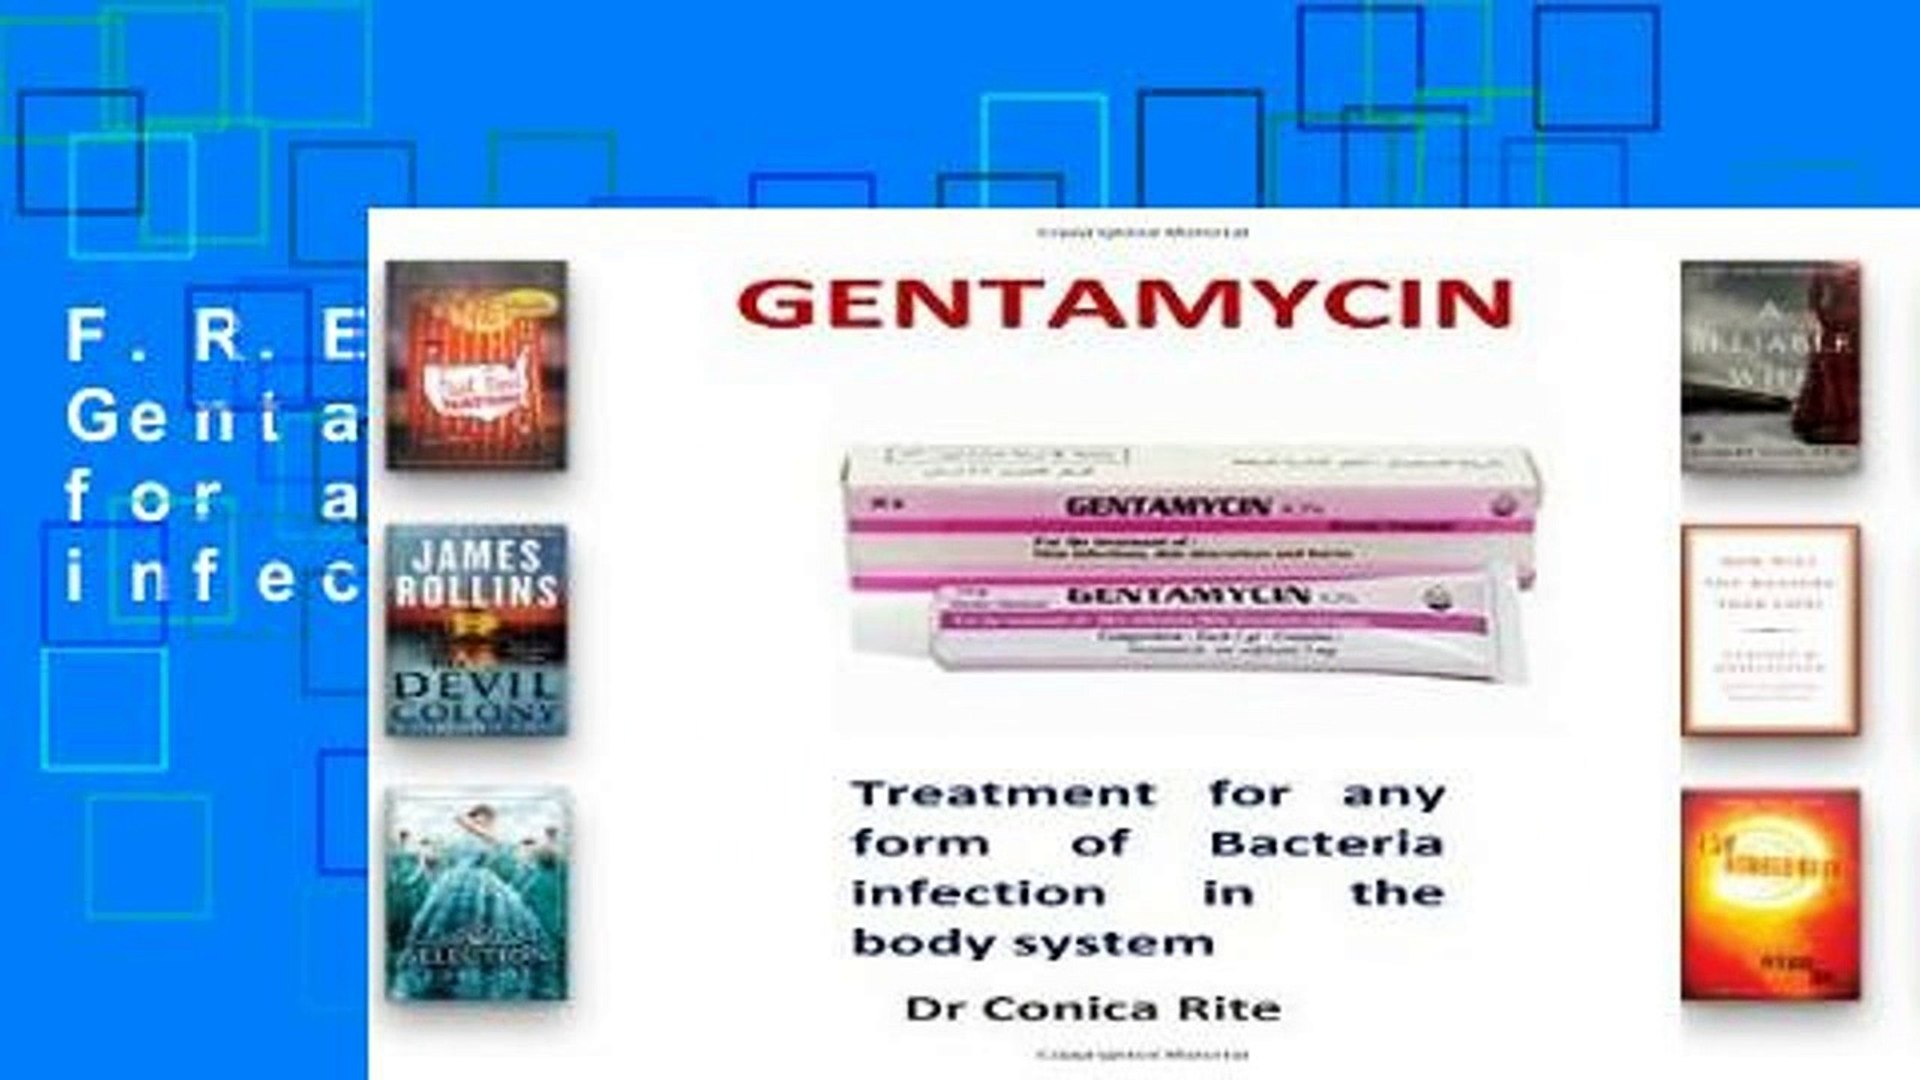 F.R.E.E [D.O.W.N.L.O.A.D] Gentamycin: Treatment for any form of Bacteria infection in the body